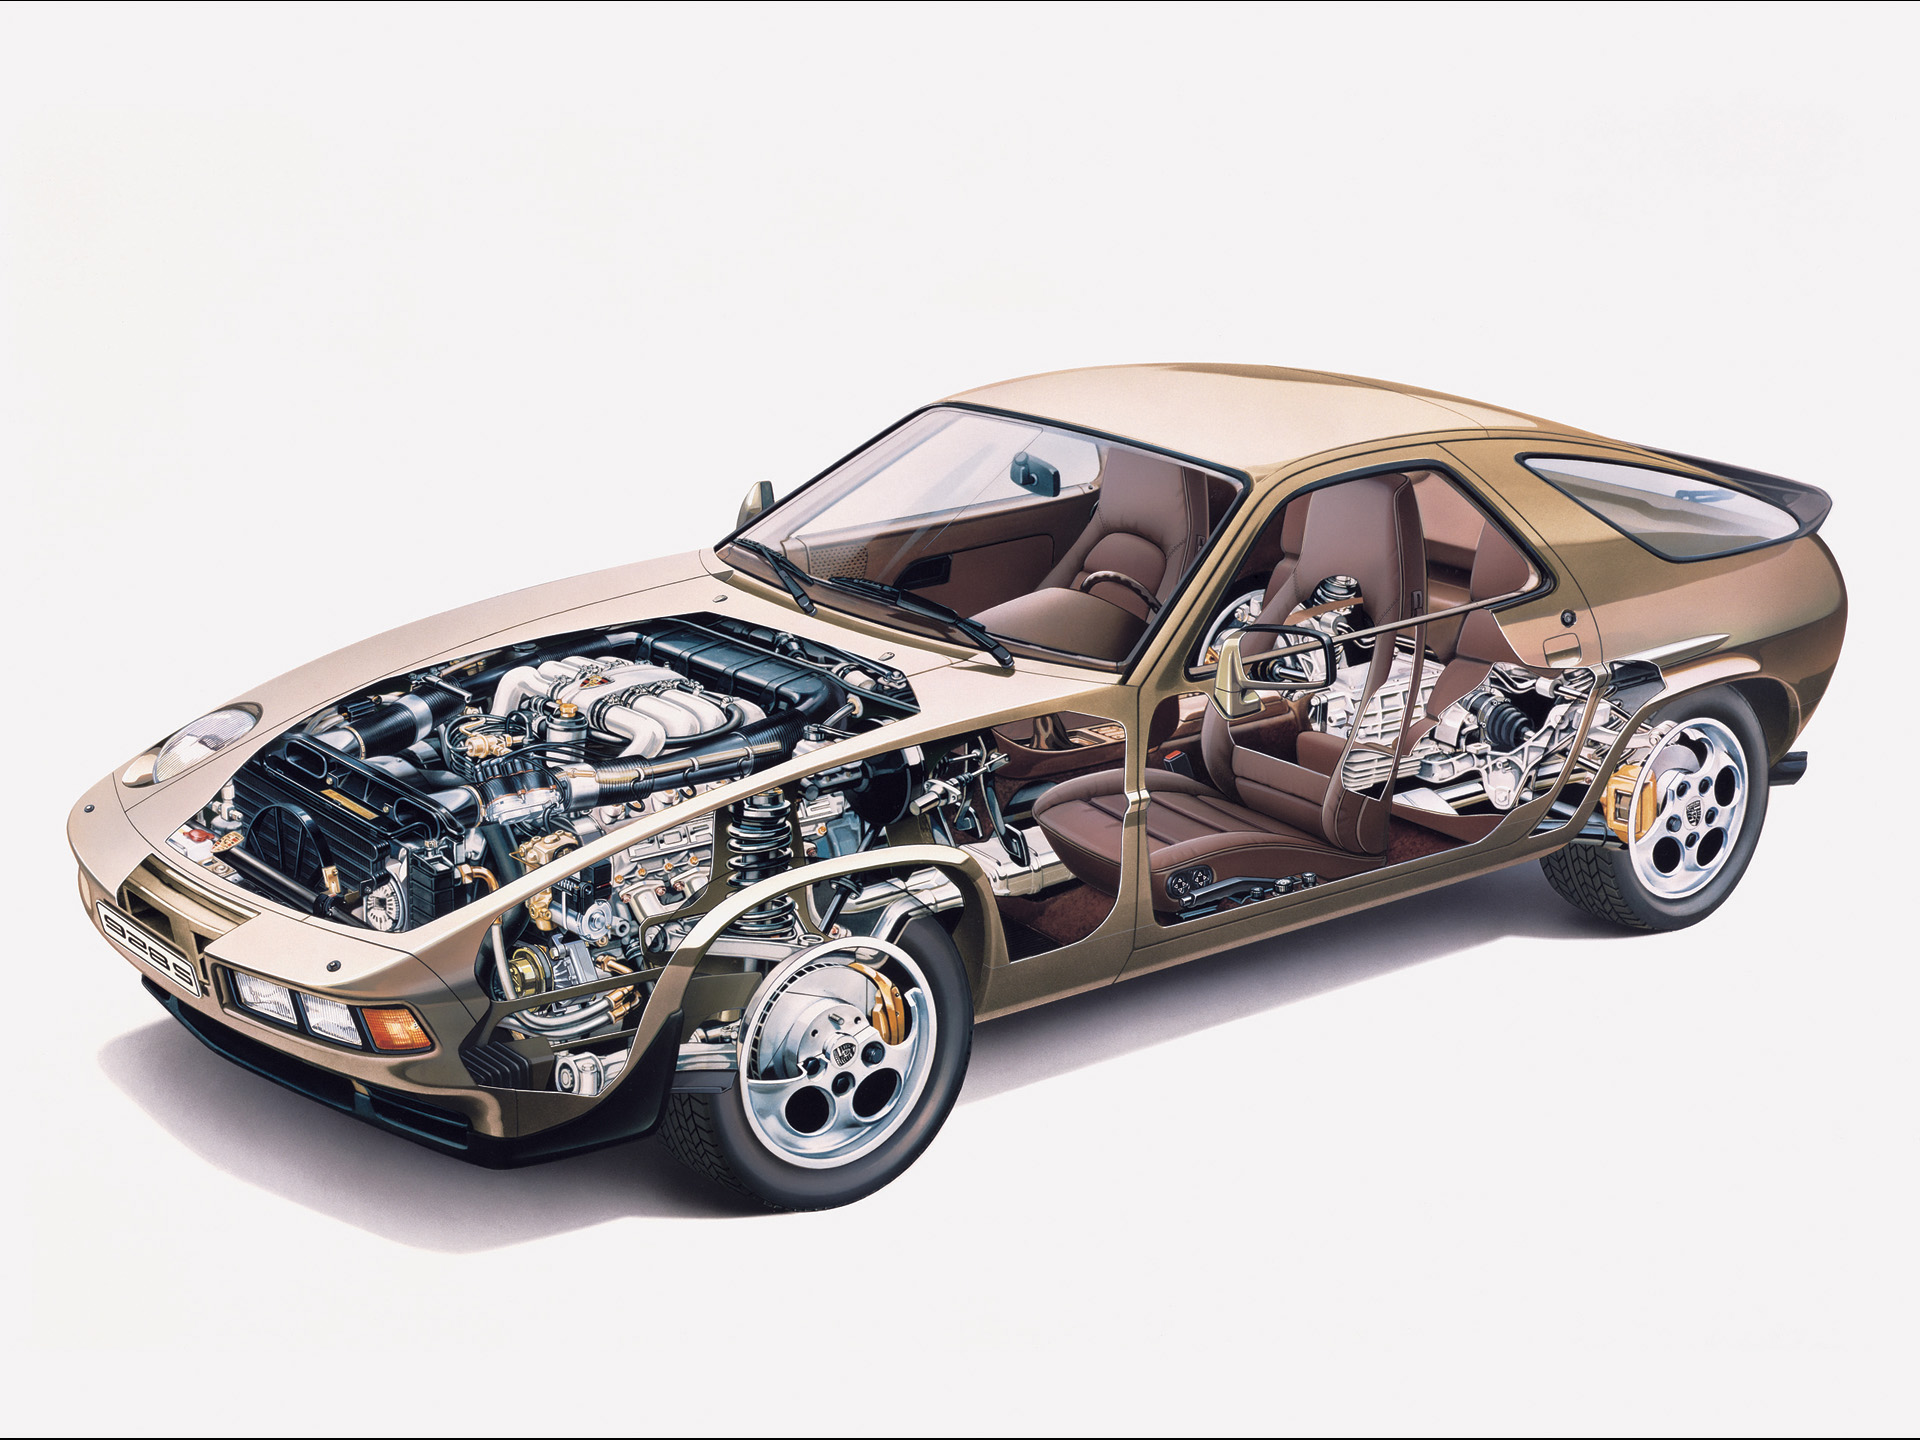 Porsche 928 Fuse Box Get Free Image About Wiring Diagram 85